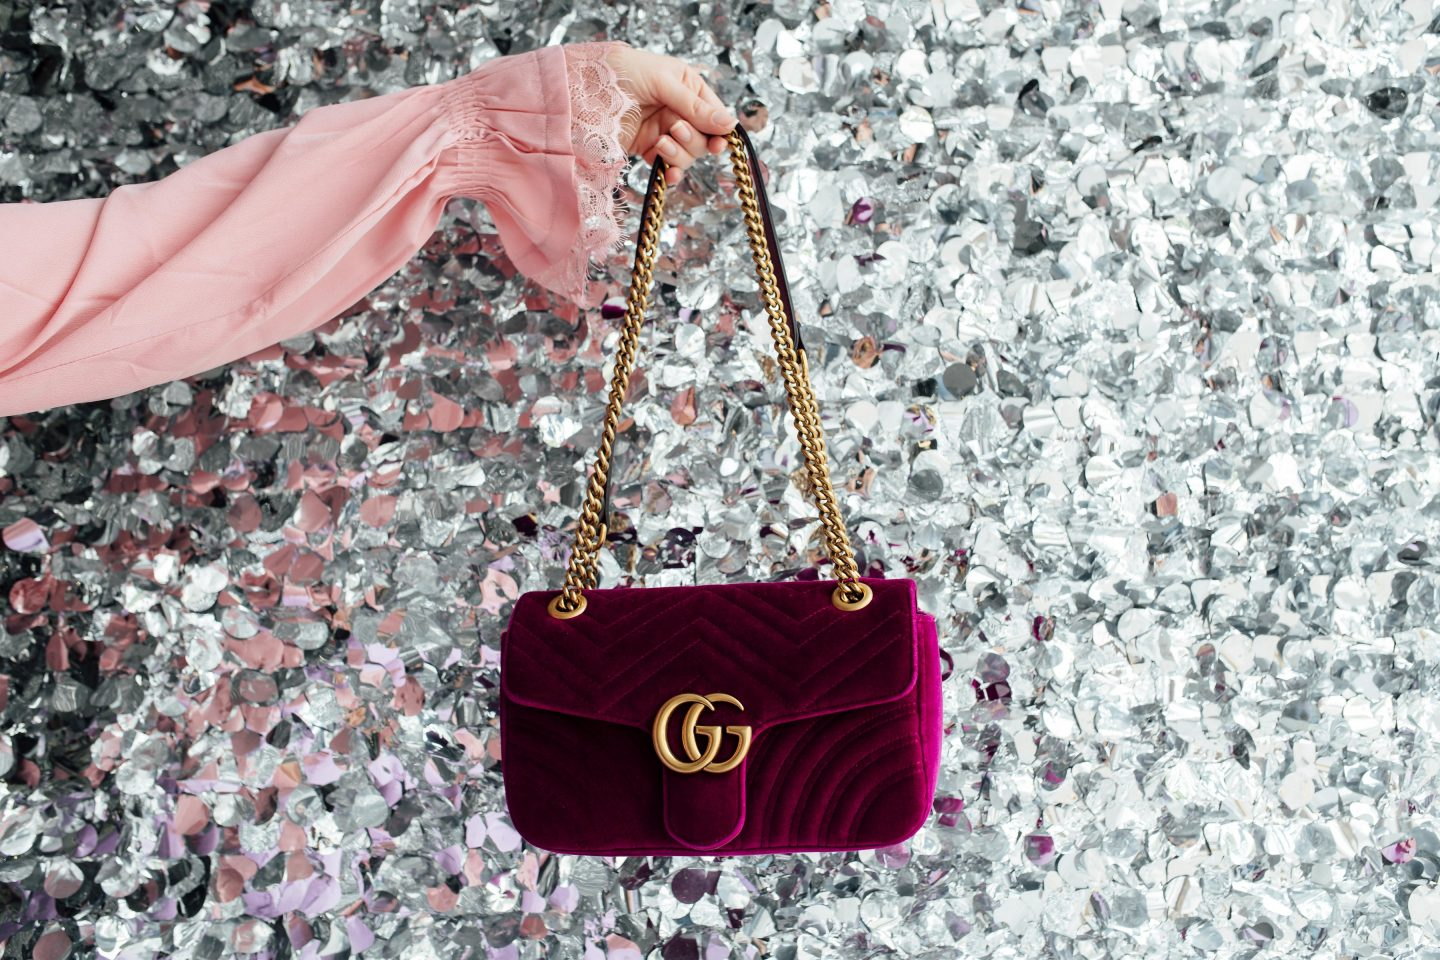 5 SIGNS YOU NEED GLAMOUR IN YOUR LIFE, Asos pink top, ASOS, Gucci Marmont small velvet, Gucci marmont small bag, Gucci marmont velvet bag